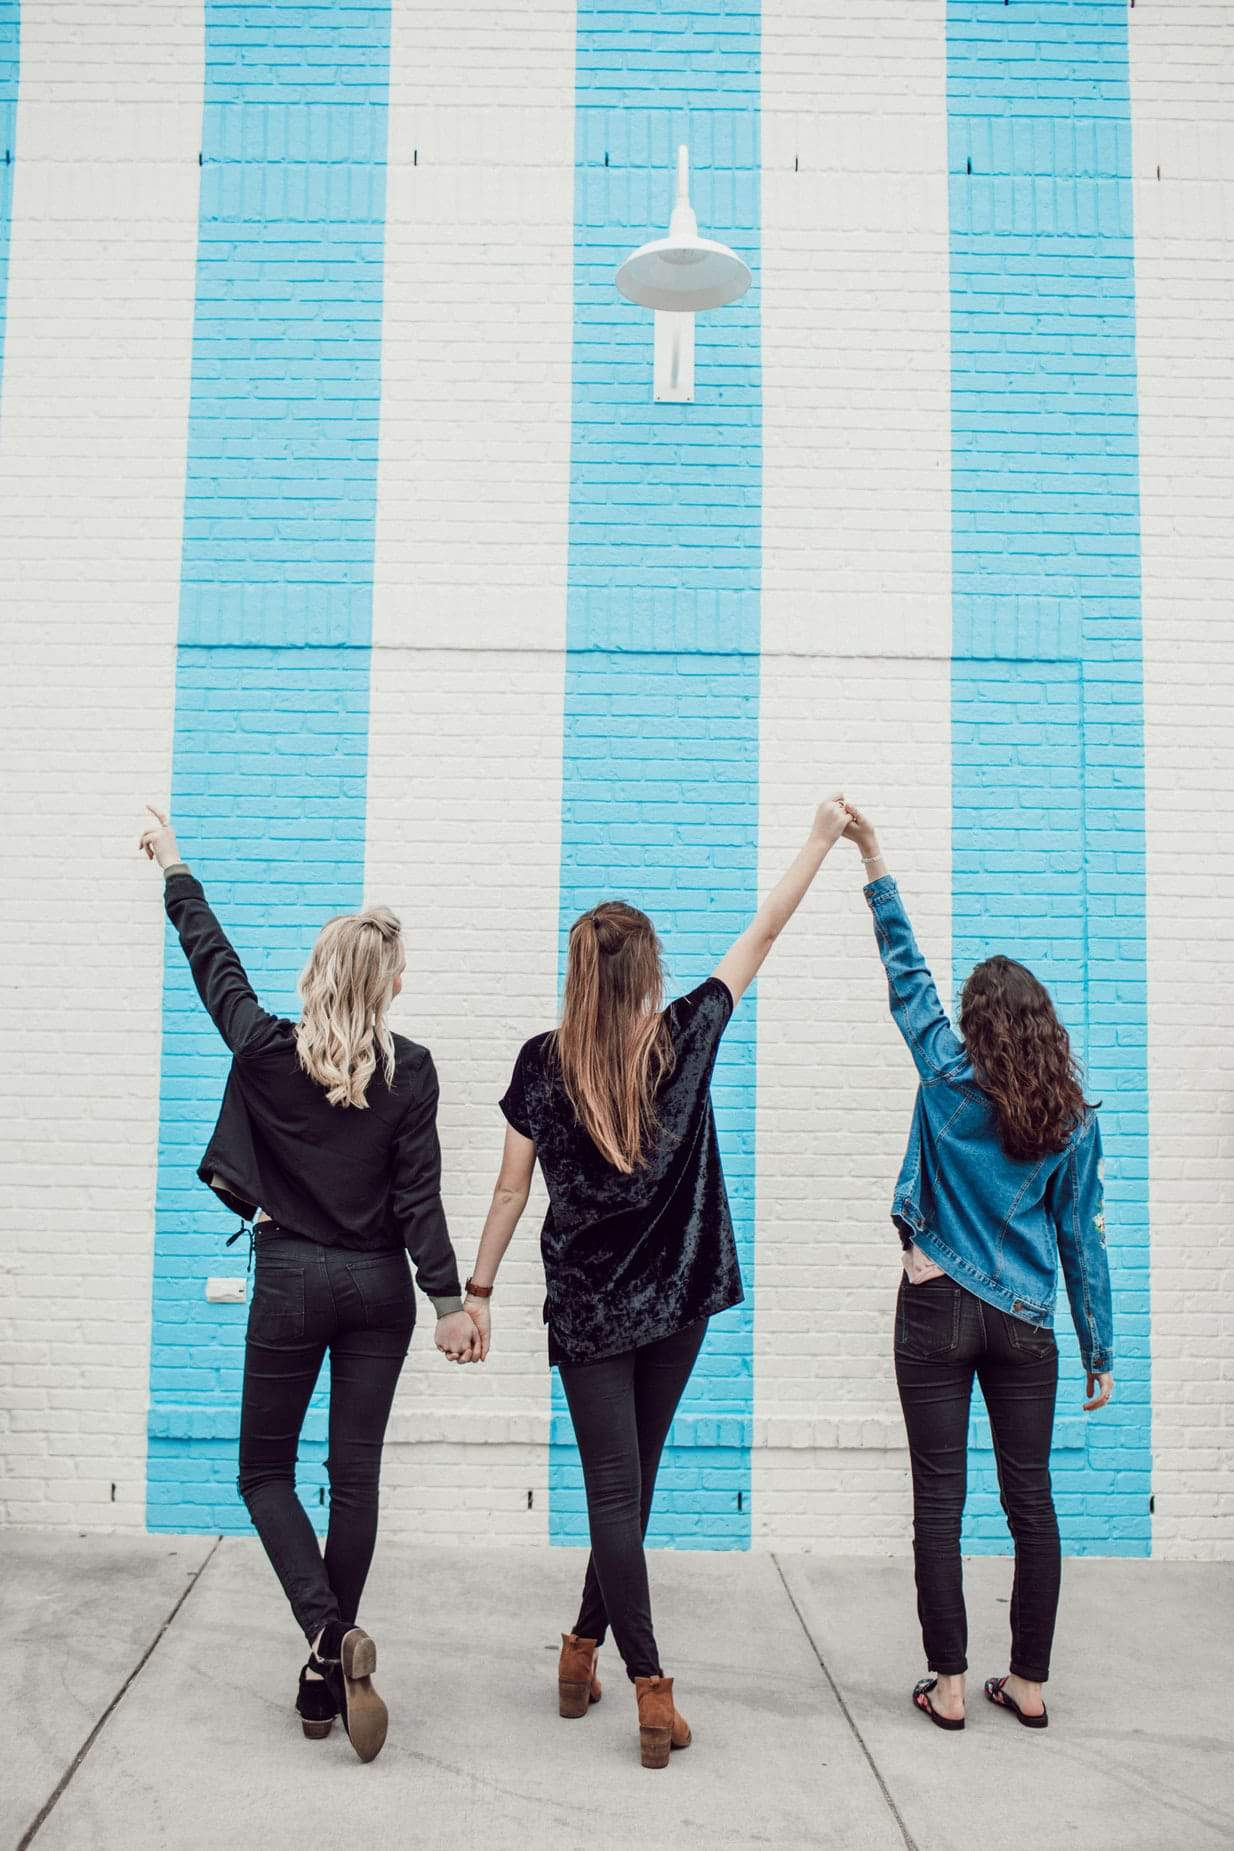 Friends together making hand signals